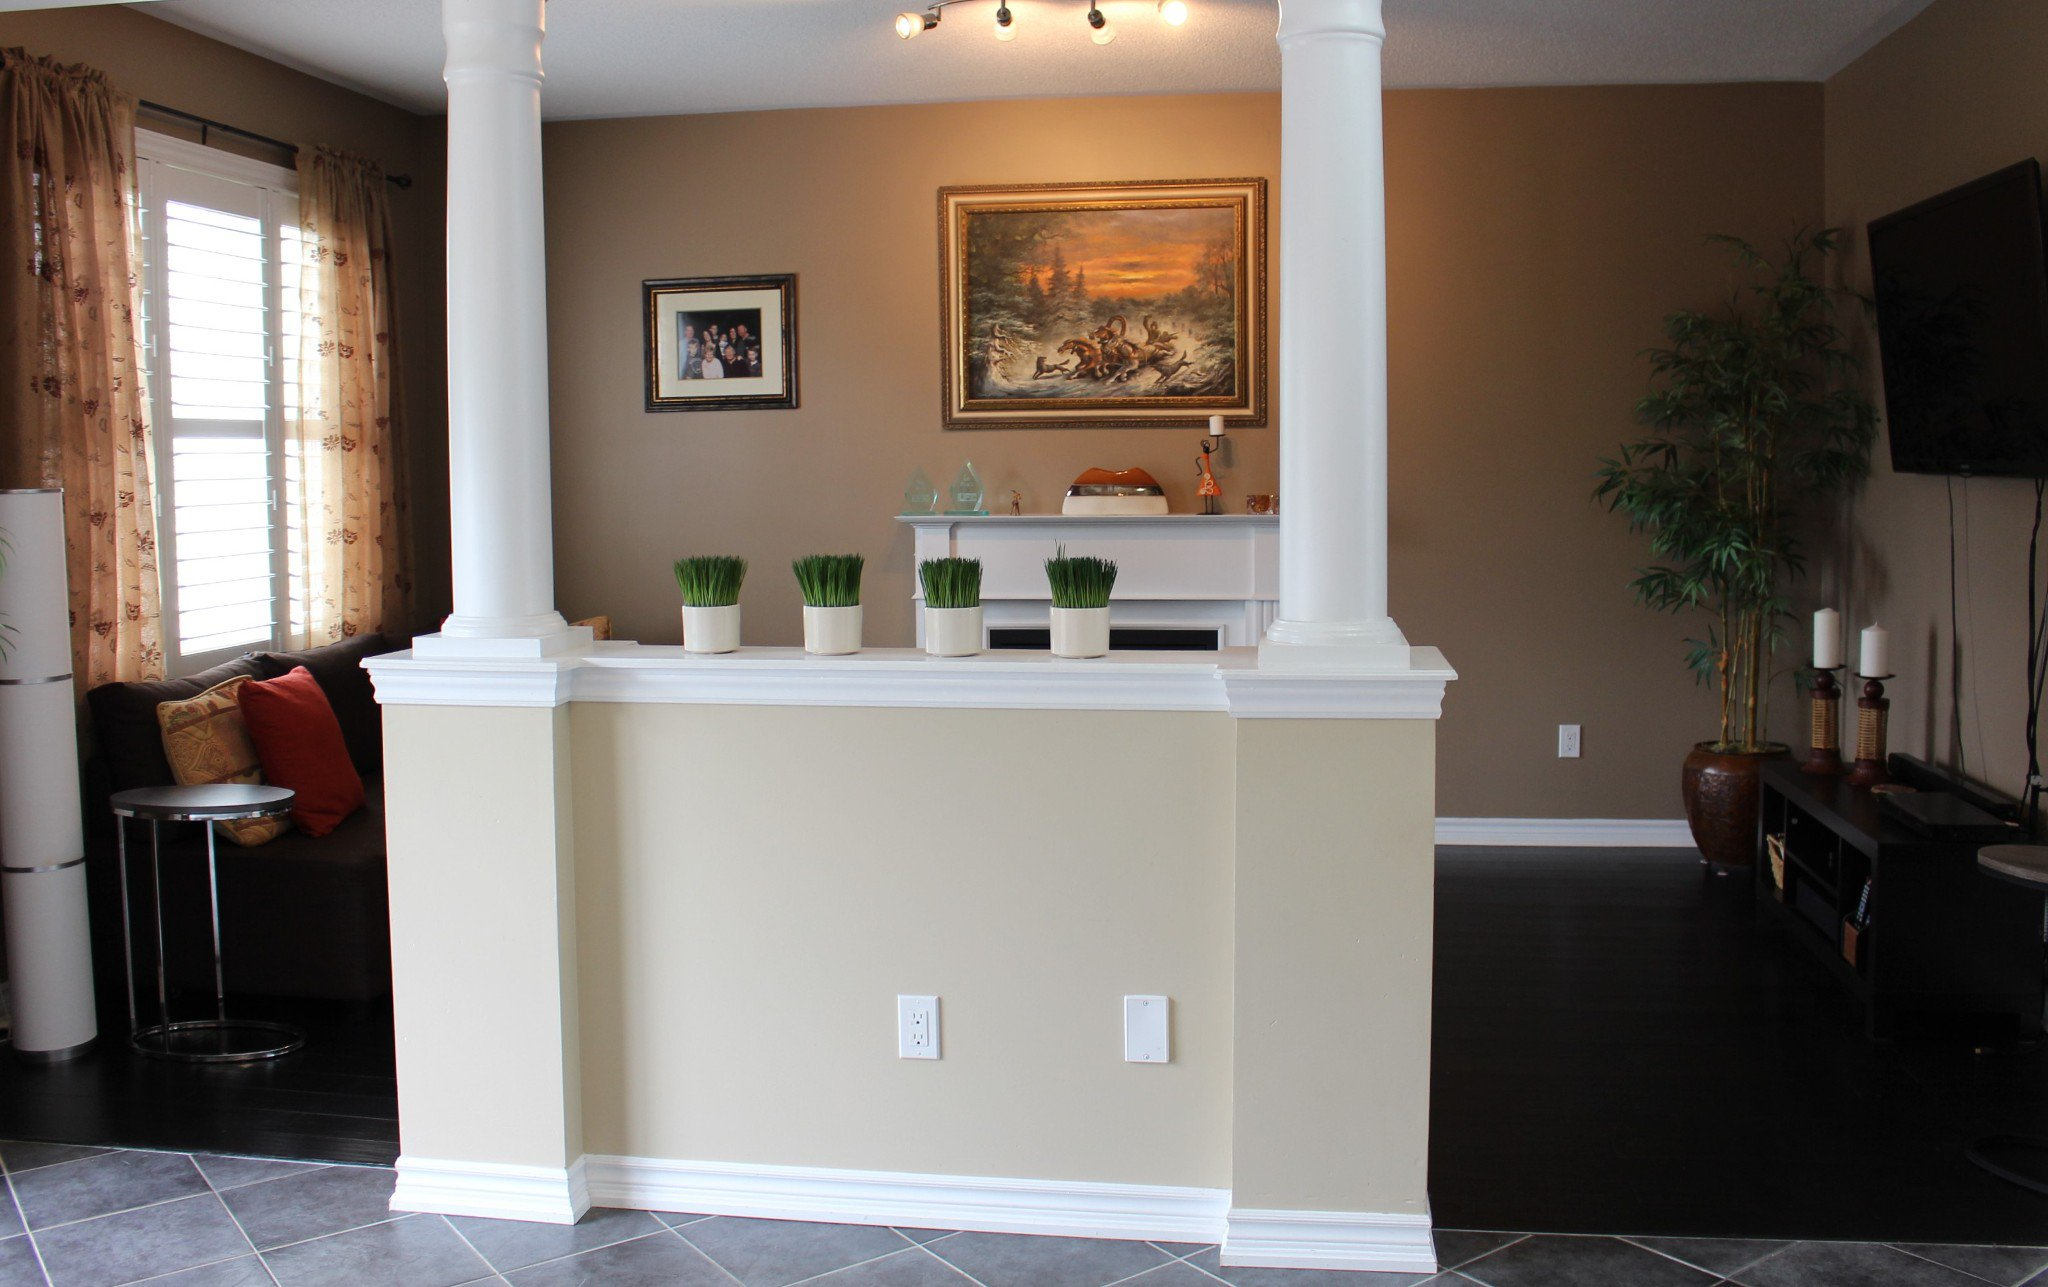 Photo 13: Photos: 716 Prince of Wales Drive in Cobourg: Residential Detached for sale : MLS®# 209153